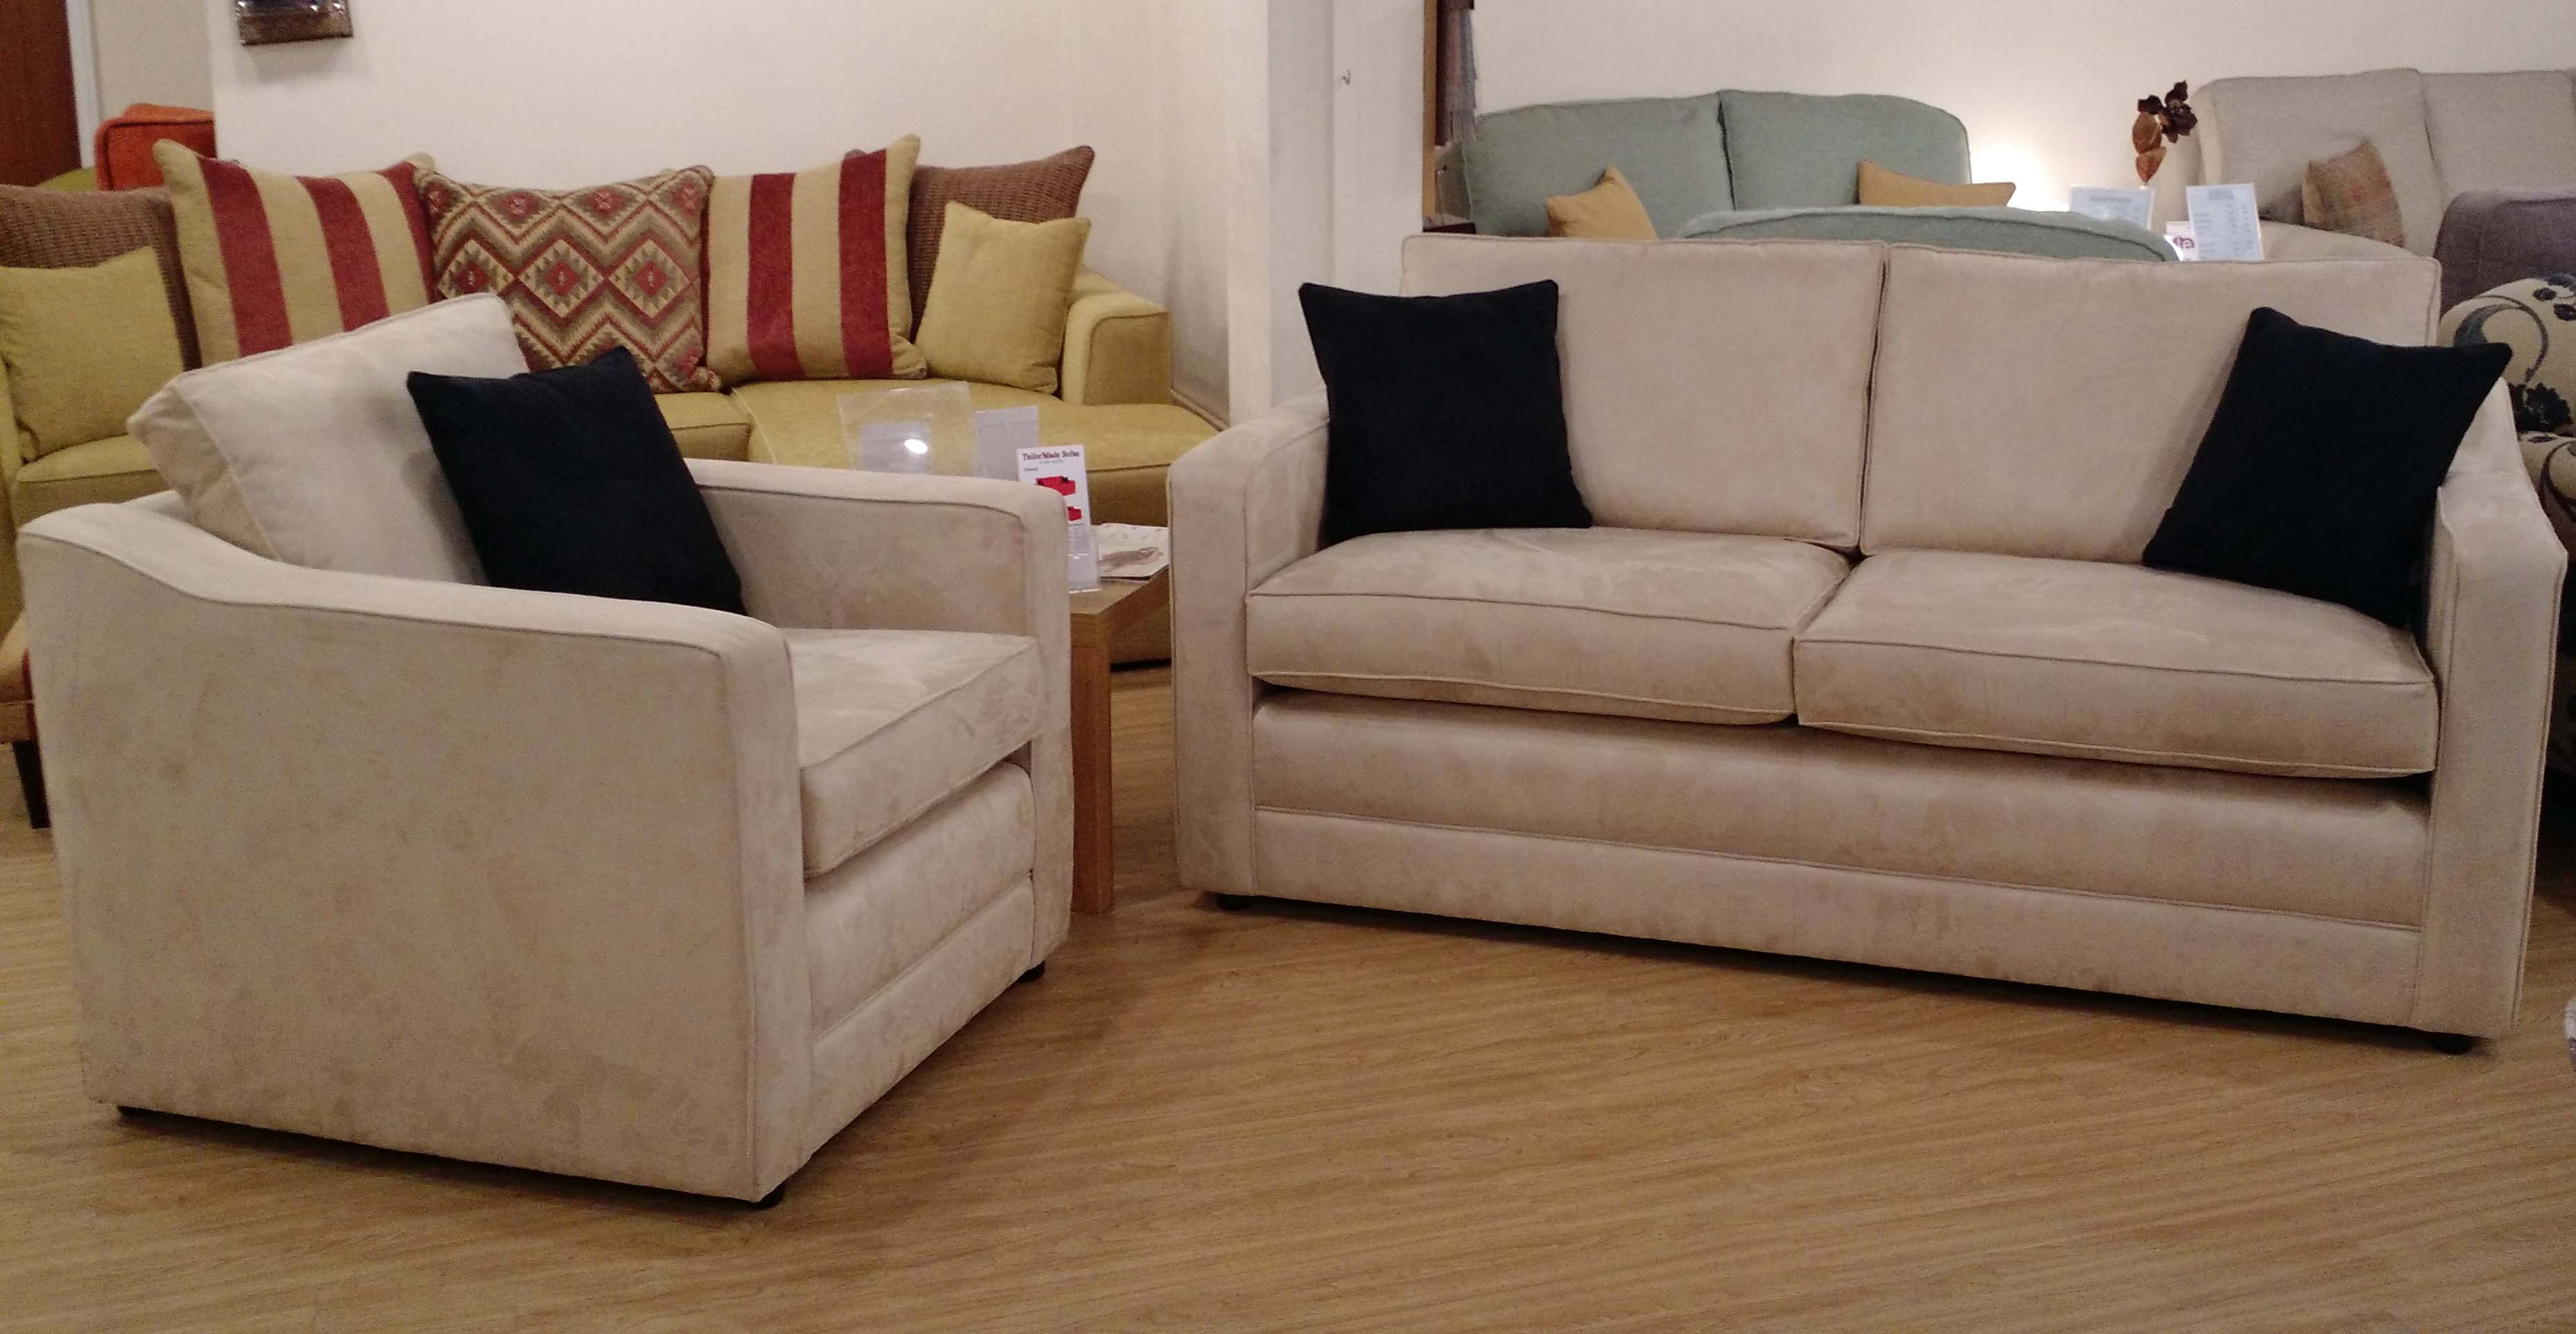 ex display sofa bed birmingham ravel small leather chocolate princeton 3str and chair tailor made sofas